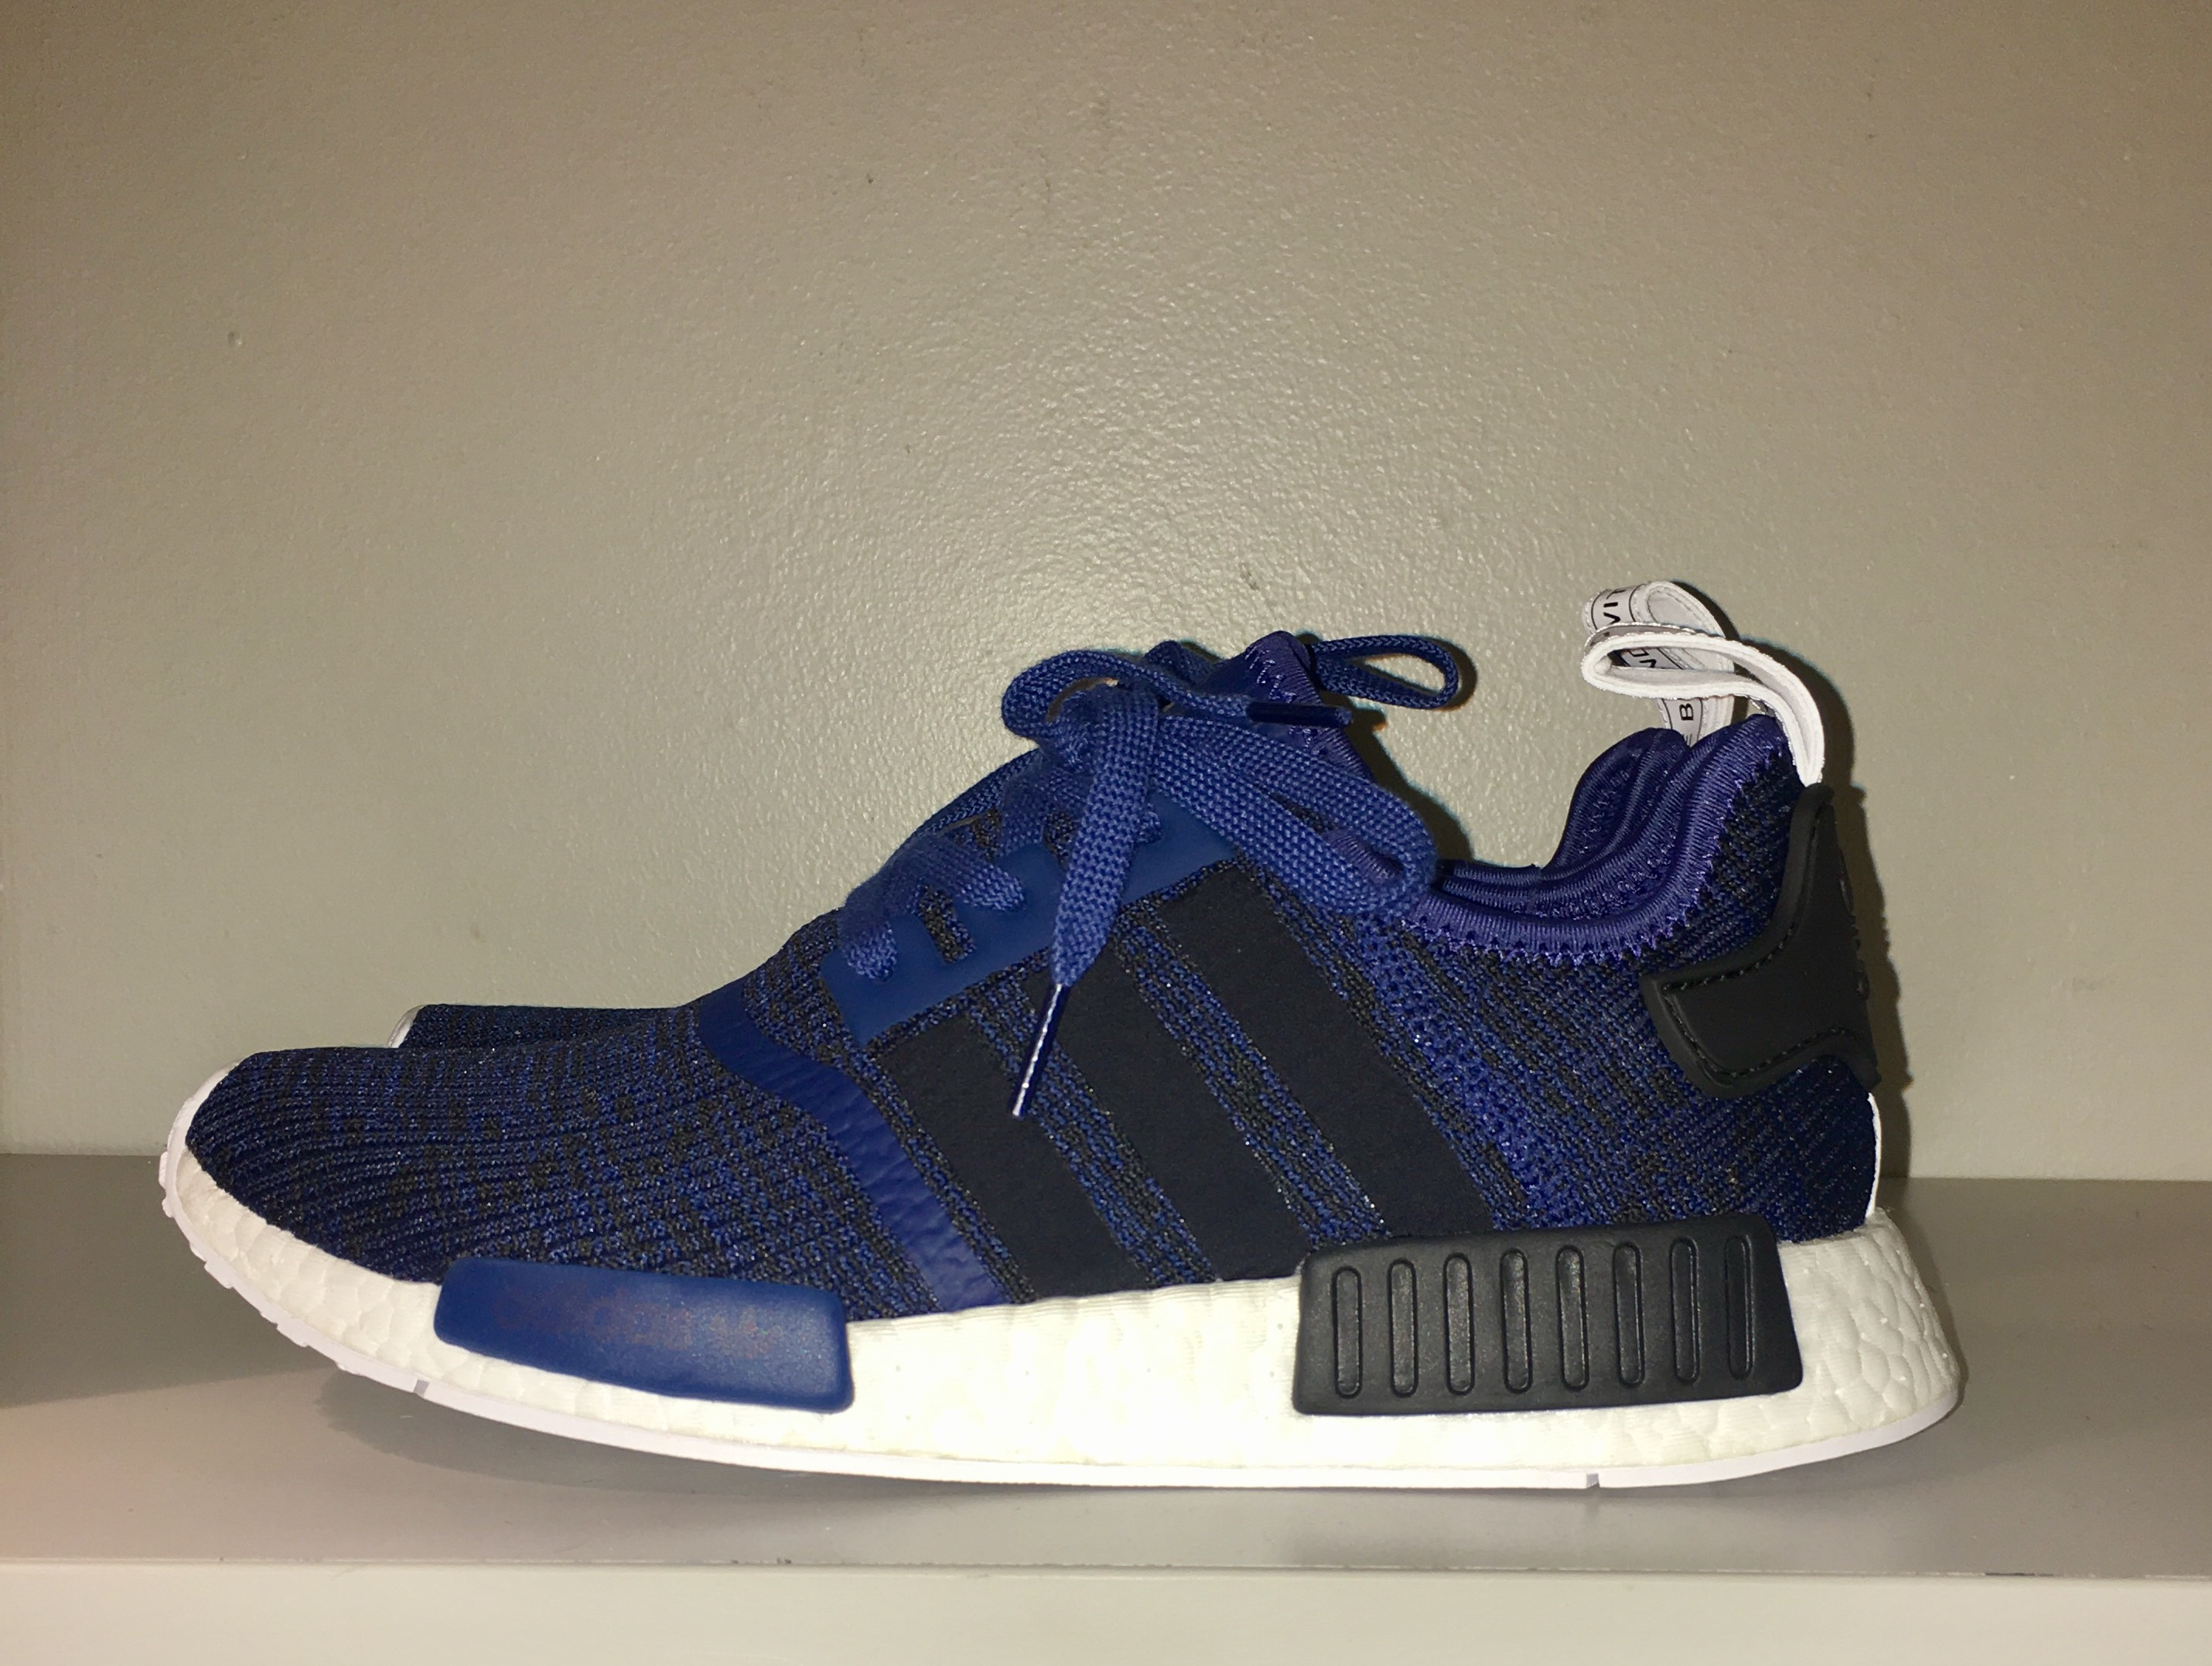 quality design dc5d0 75963 Nmd R1 Mystery Blue